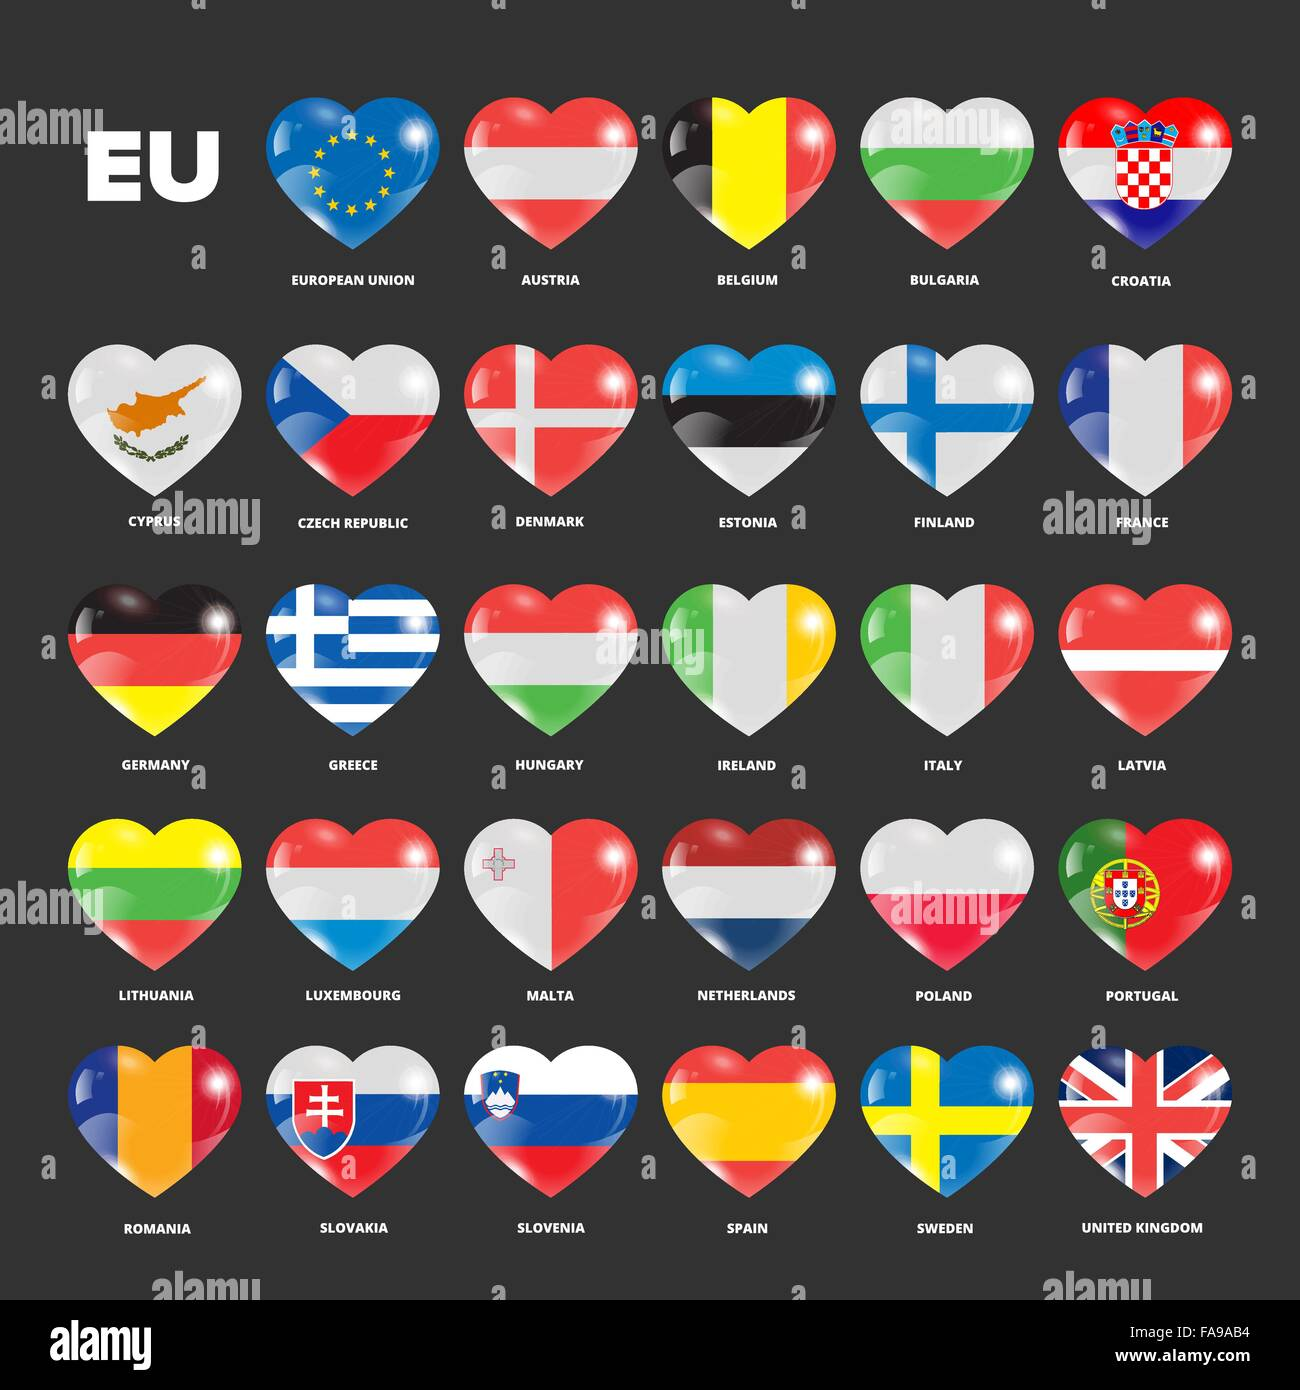 European Union flags in hearts set for using with dark backgrounds - Stock Image